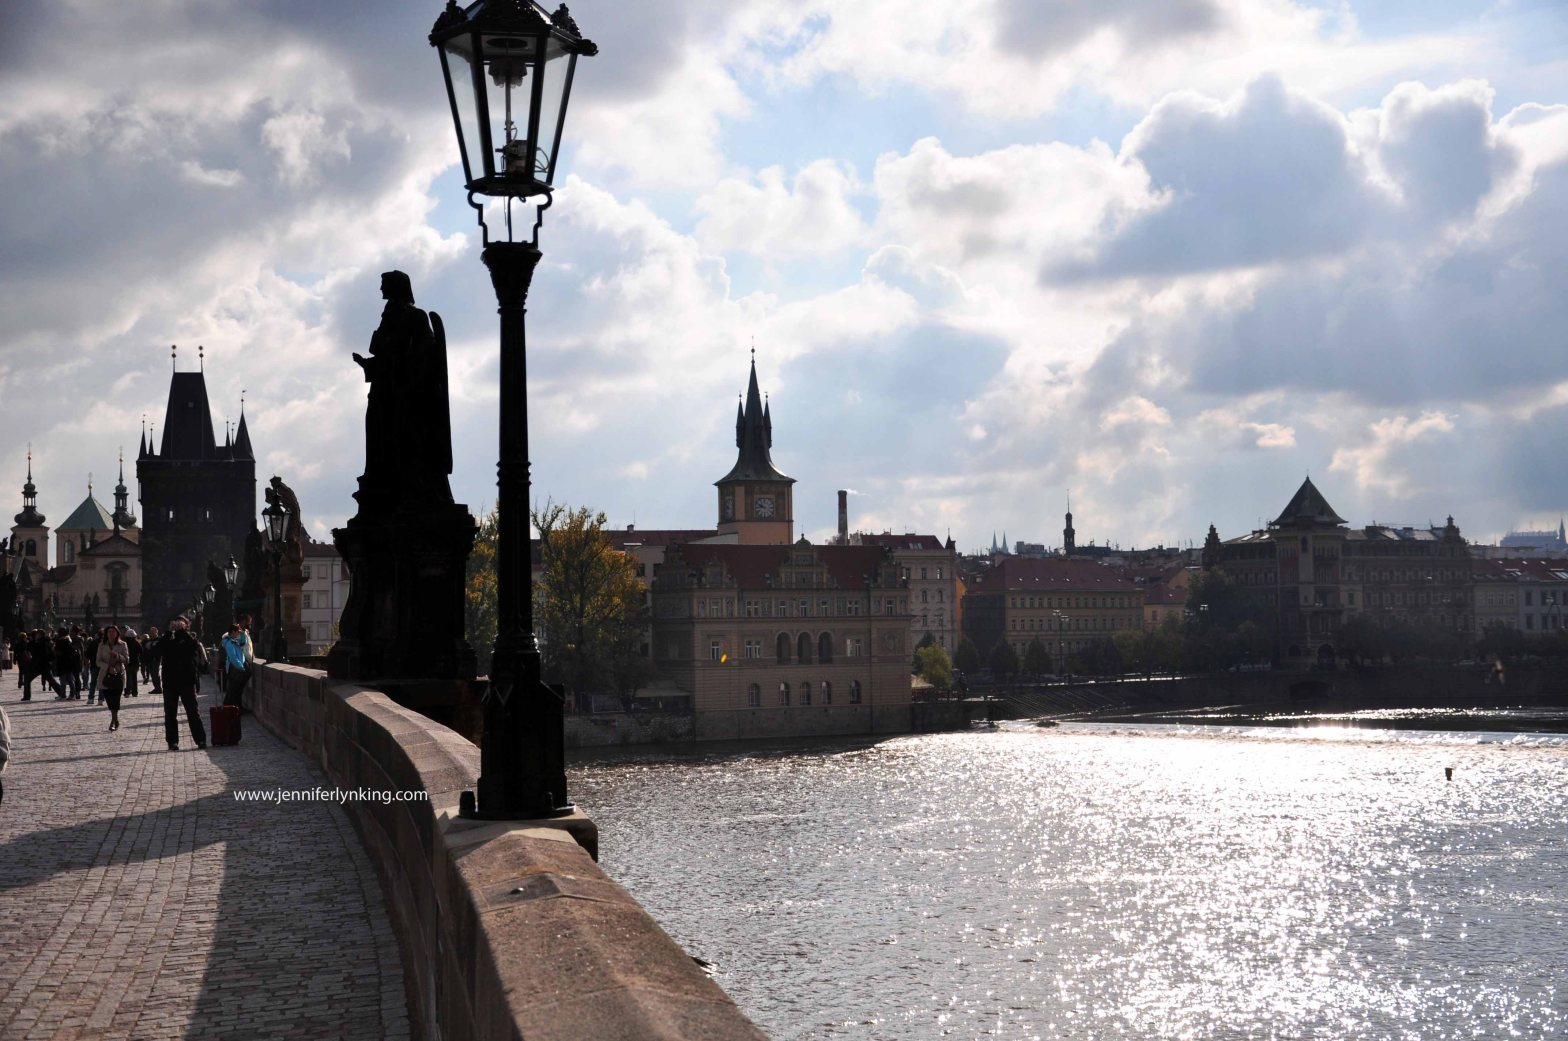 The view across Charles Bridge and the Vltava River, in Prague